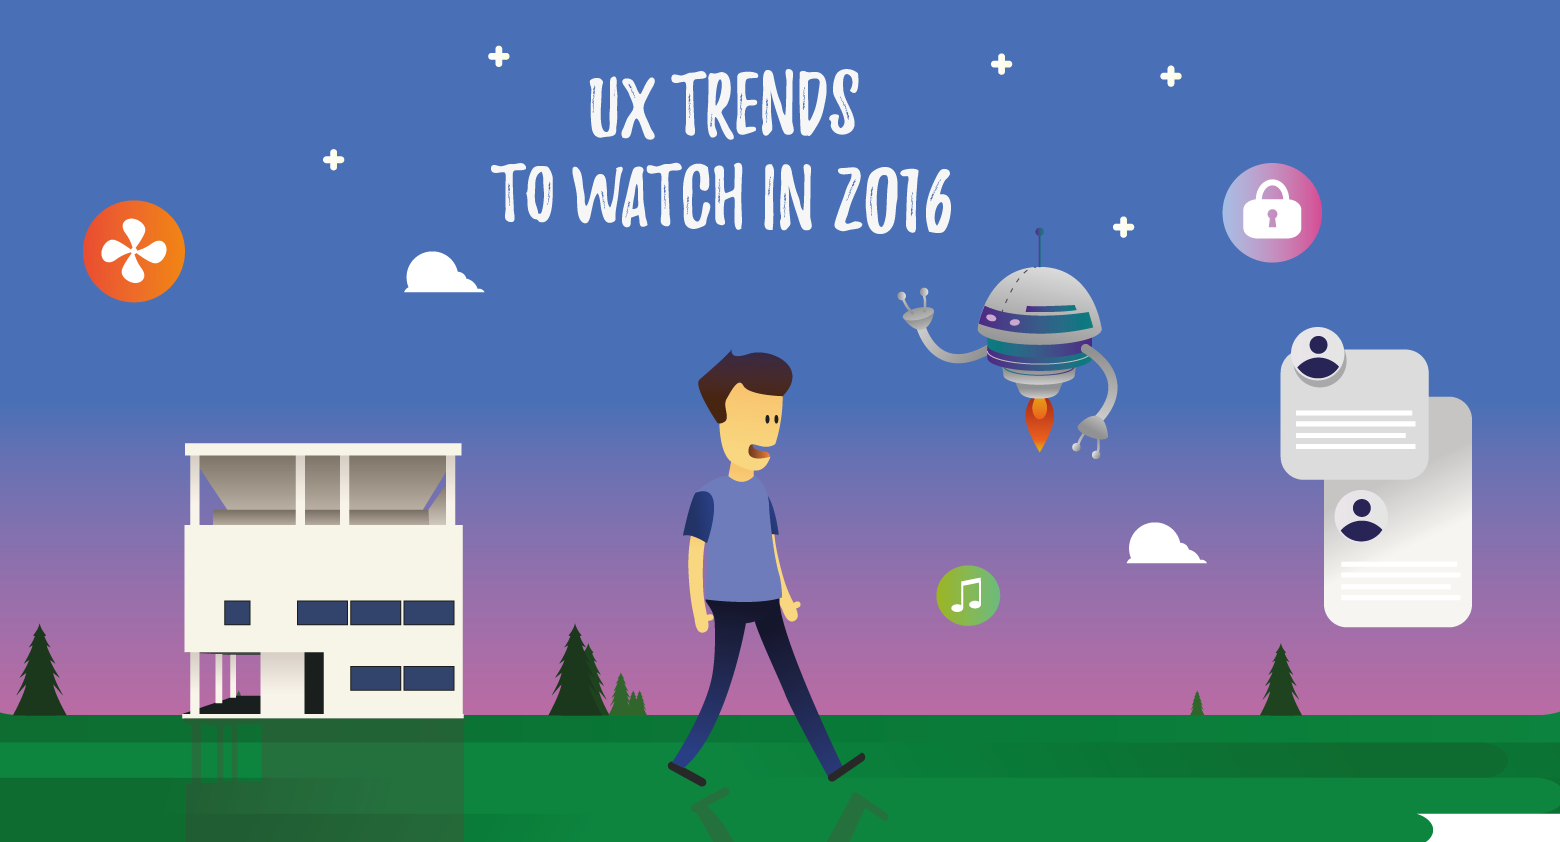 Five UX Trends to Watch in 2016